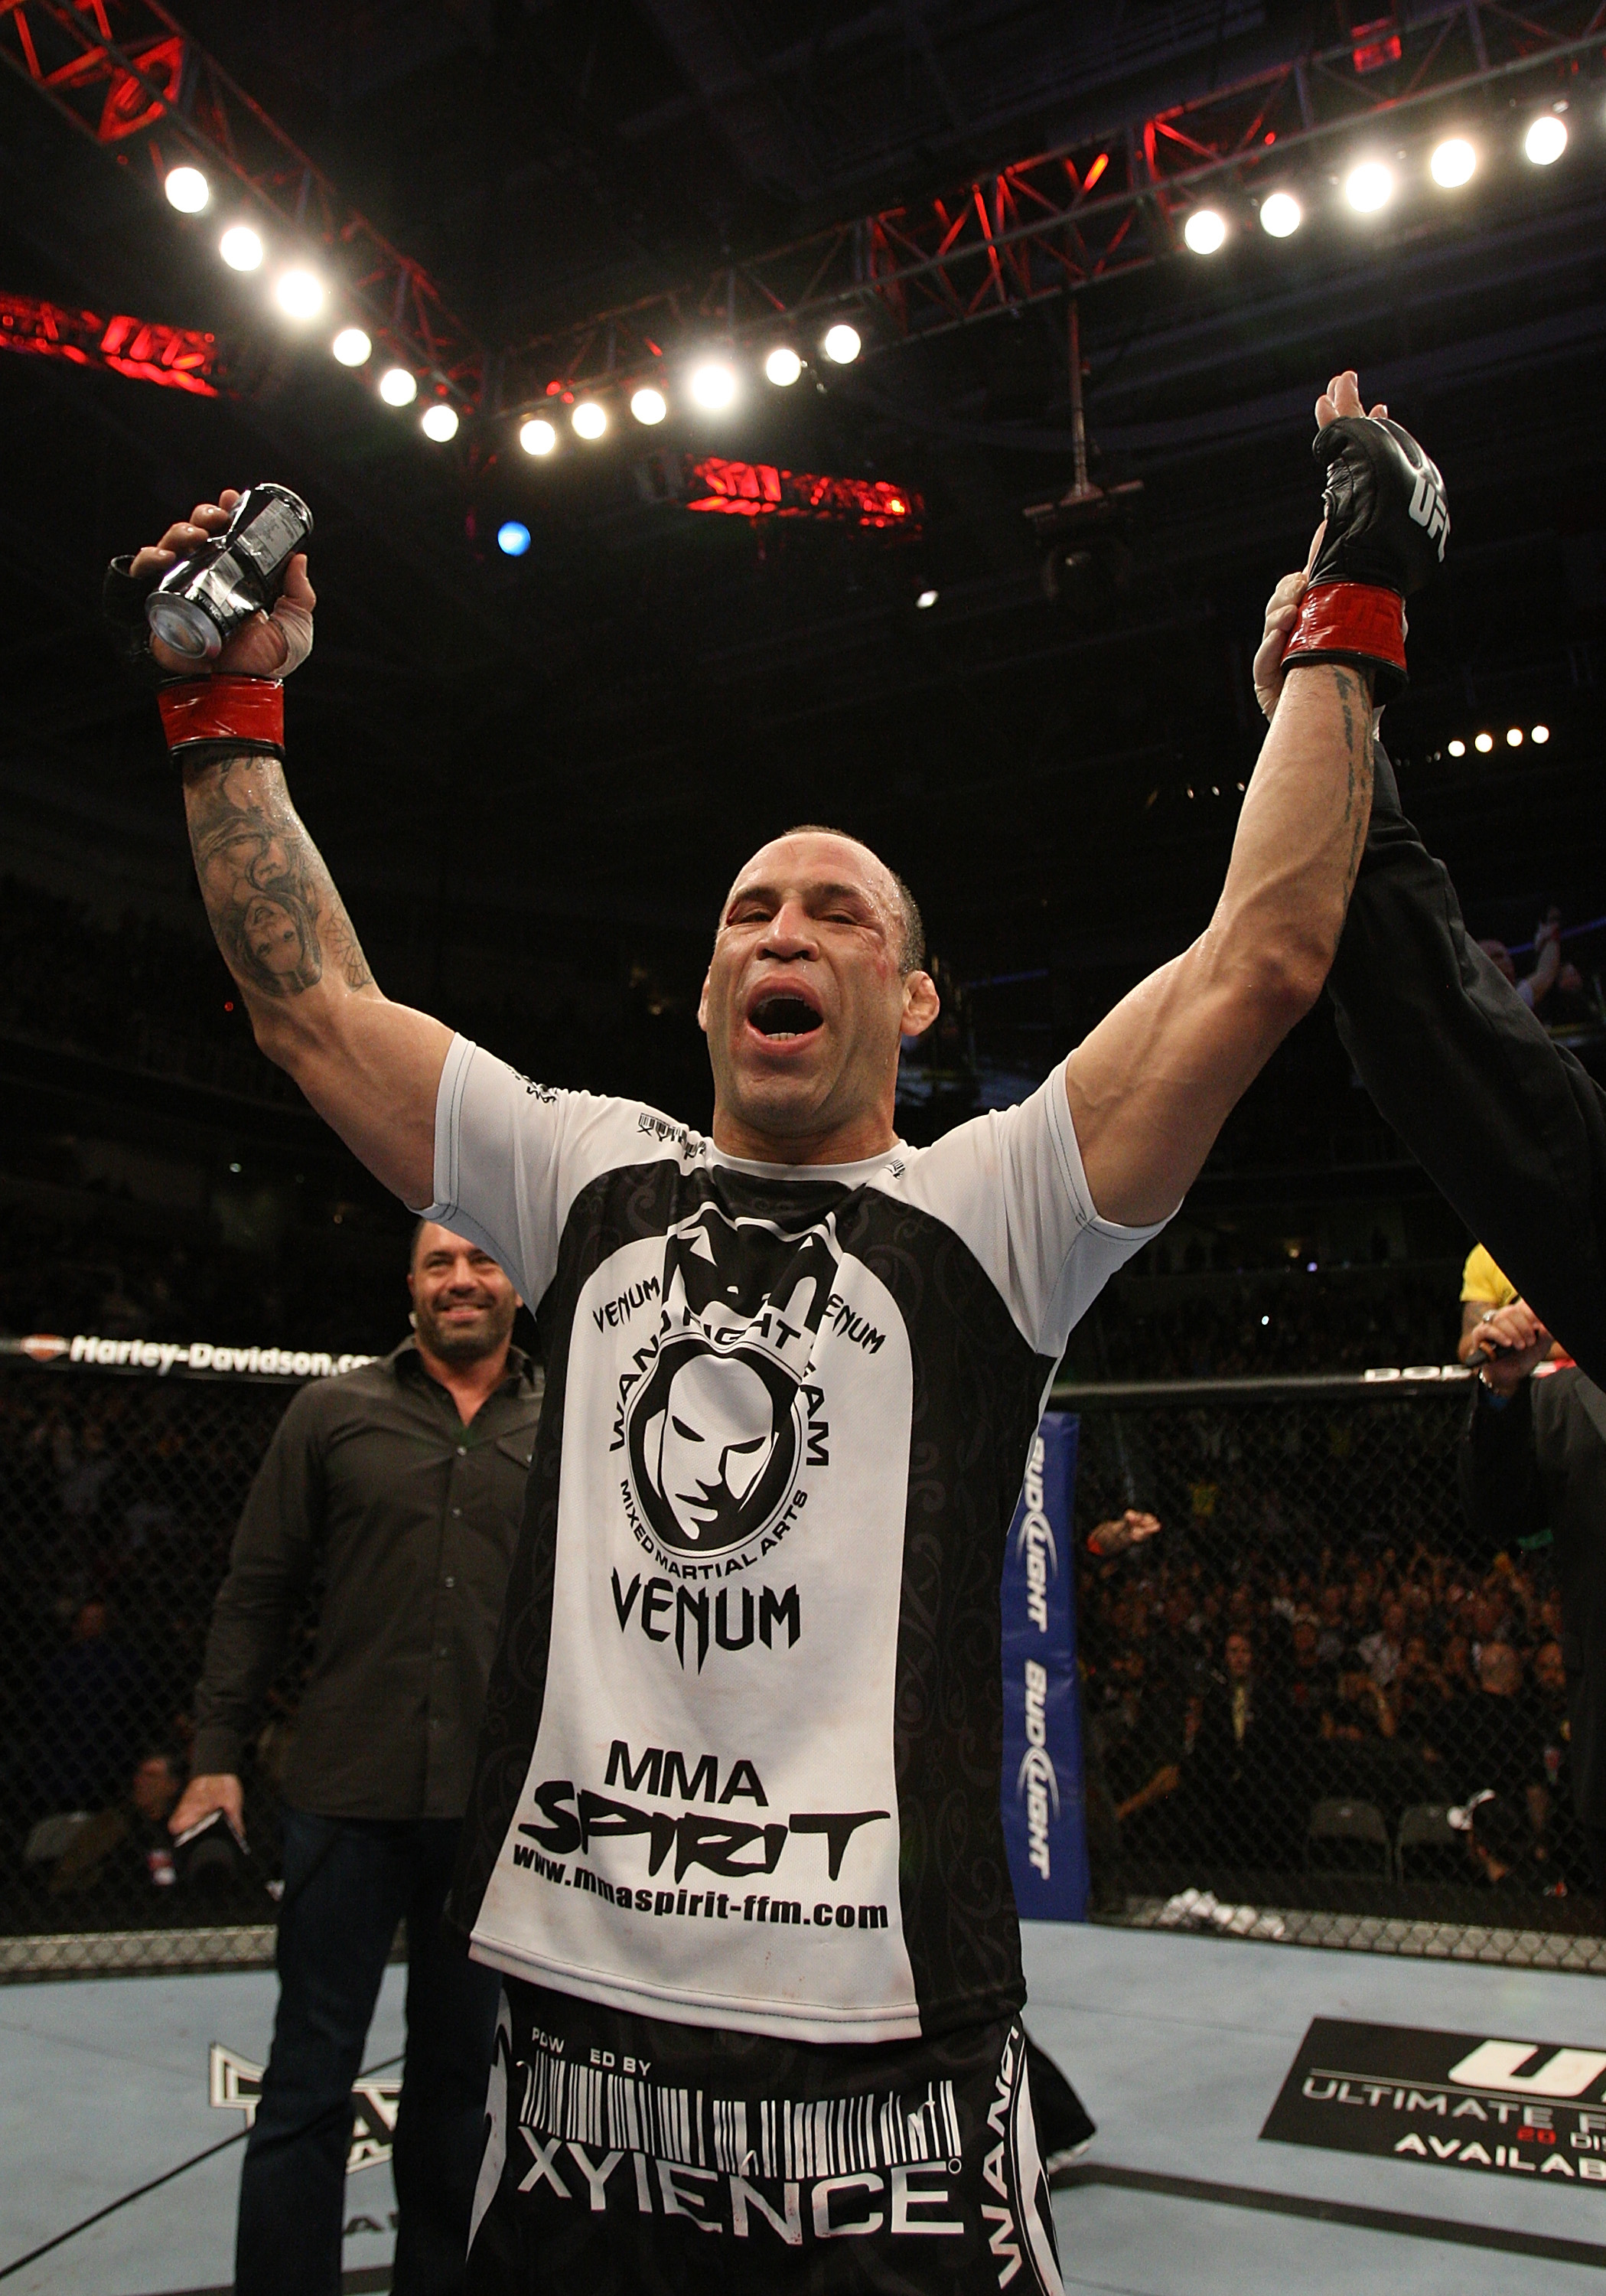 SAN JOSE, CA - NOVEMBER 19: Wanderlei Silva celebrates defeating Cung Le during an UFC Middleweight bout at the HP Pavillion on November 19, 2011 in San Jose, California.  (Photo by Josh Hedges/Zuffa LLC/Zuffa LLC via Getty Images)